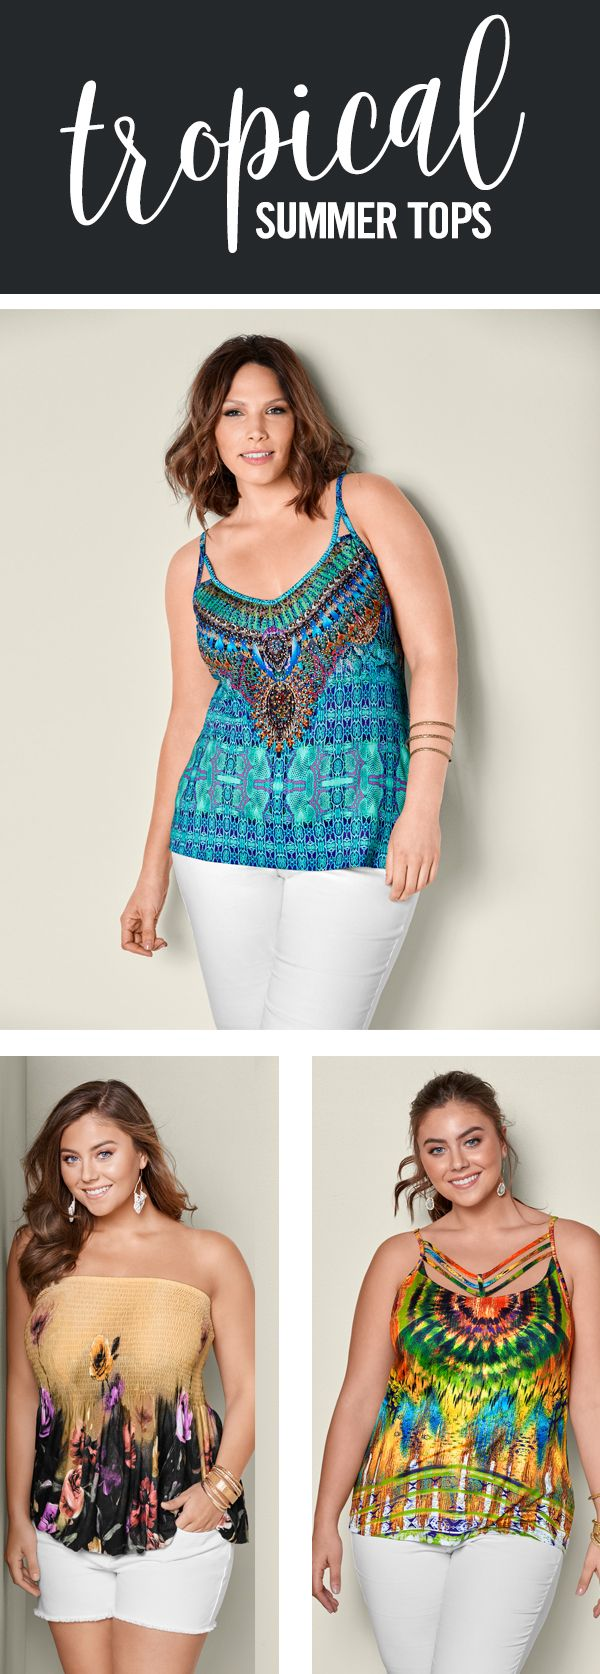 Tropical feels! You'll love these summer tops